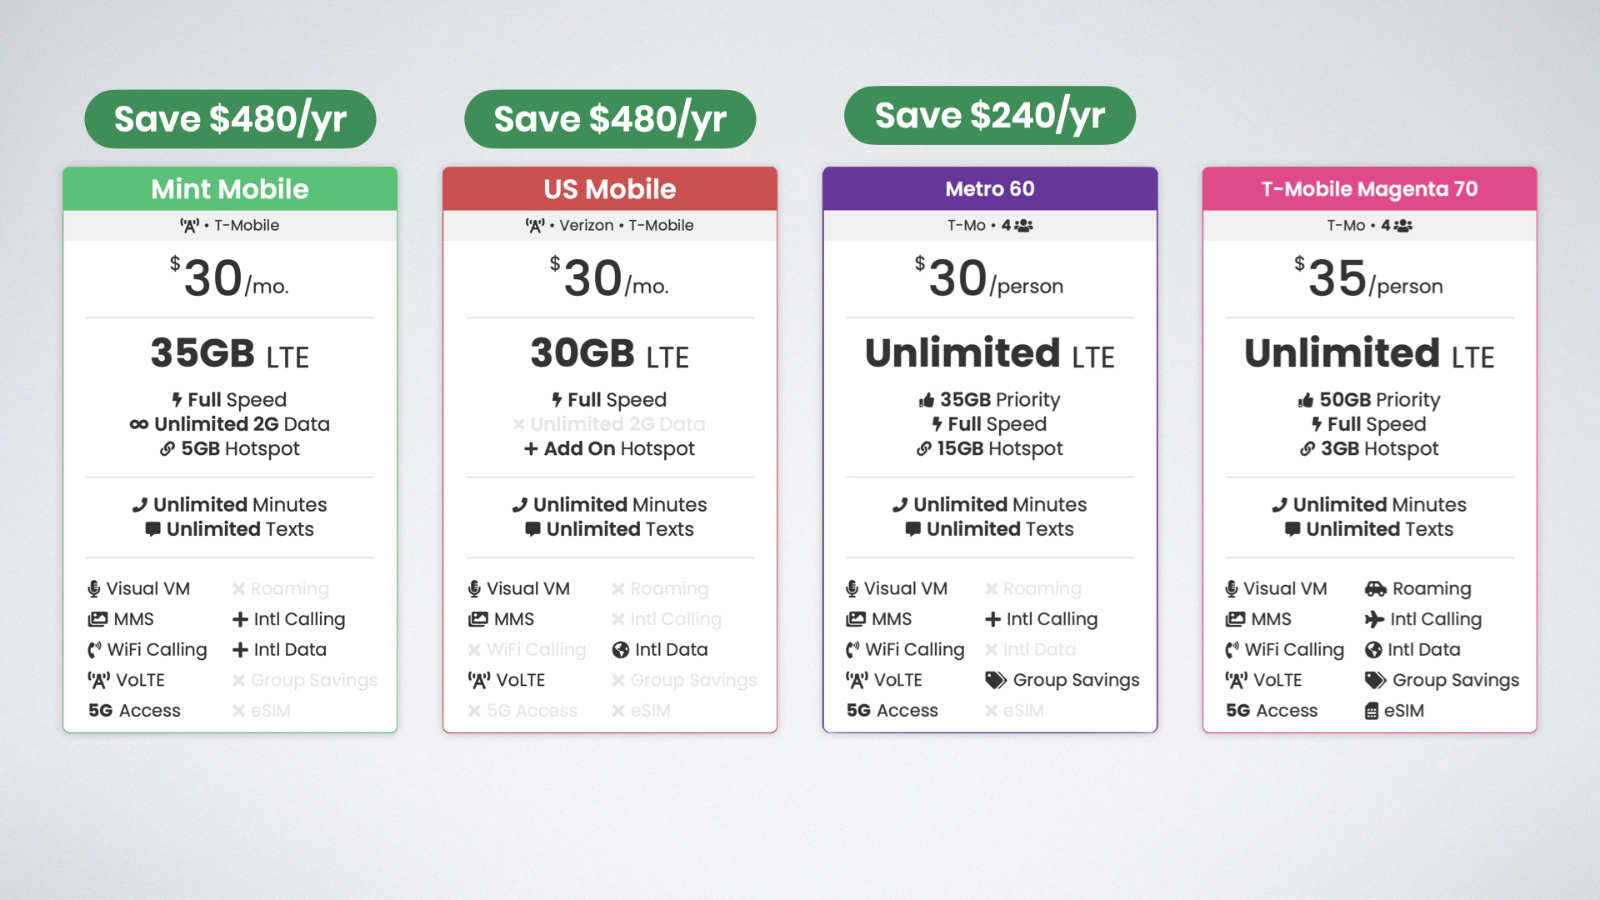 Plans from Mint Mobile, US Mobile, and Ultra Moblie meet the needs of over 82% of consumers at under half the price of T-Mobile Magenta